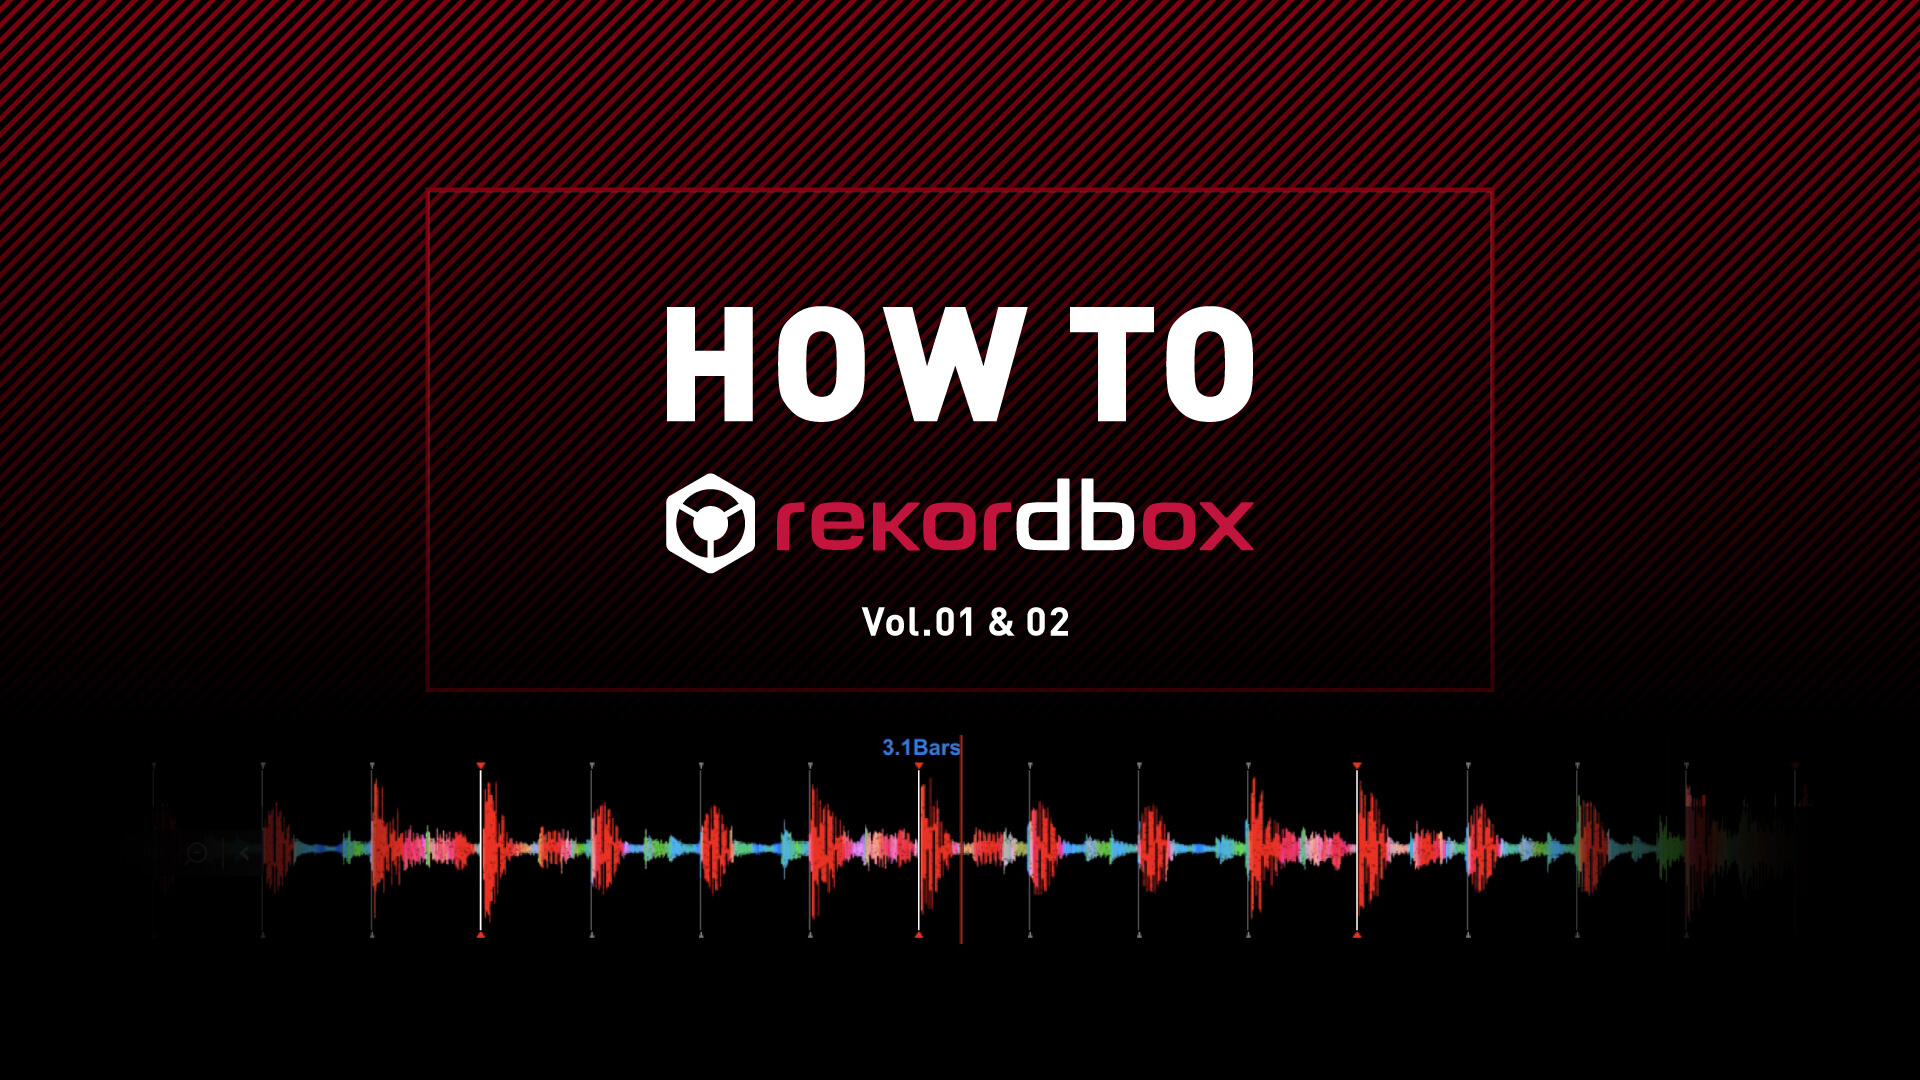 HOW TO rekordbox Vol.1 & 2